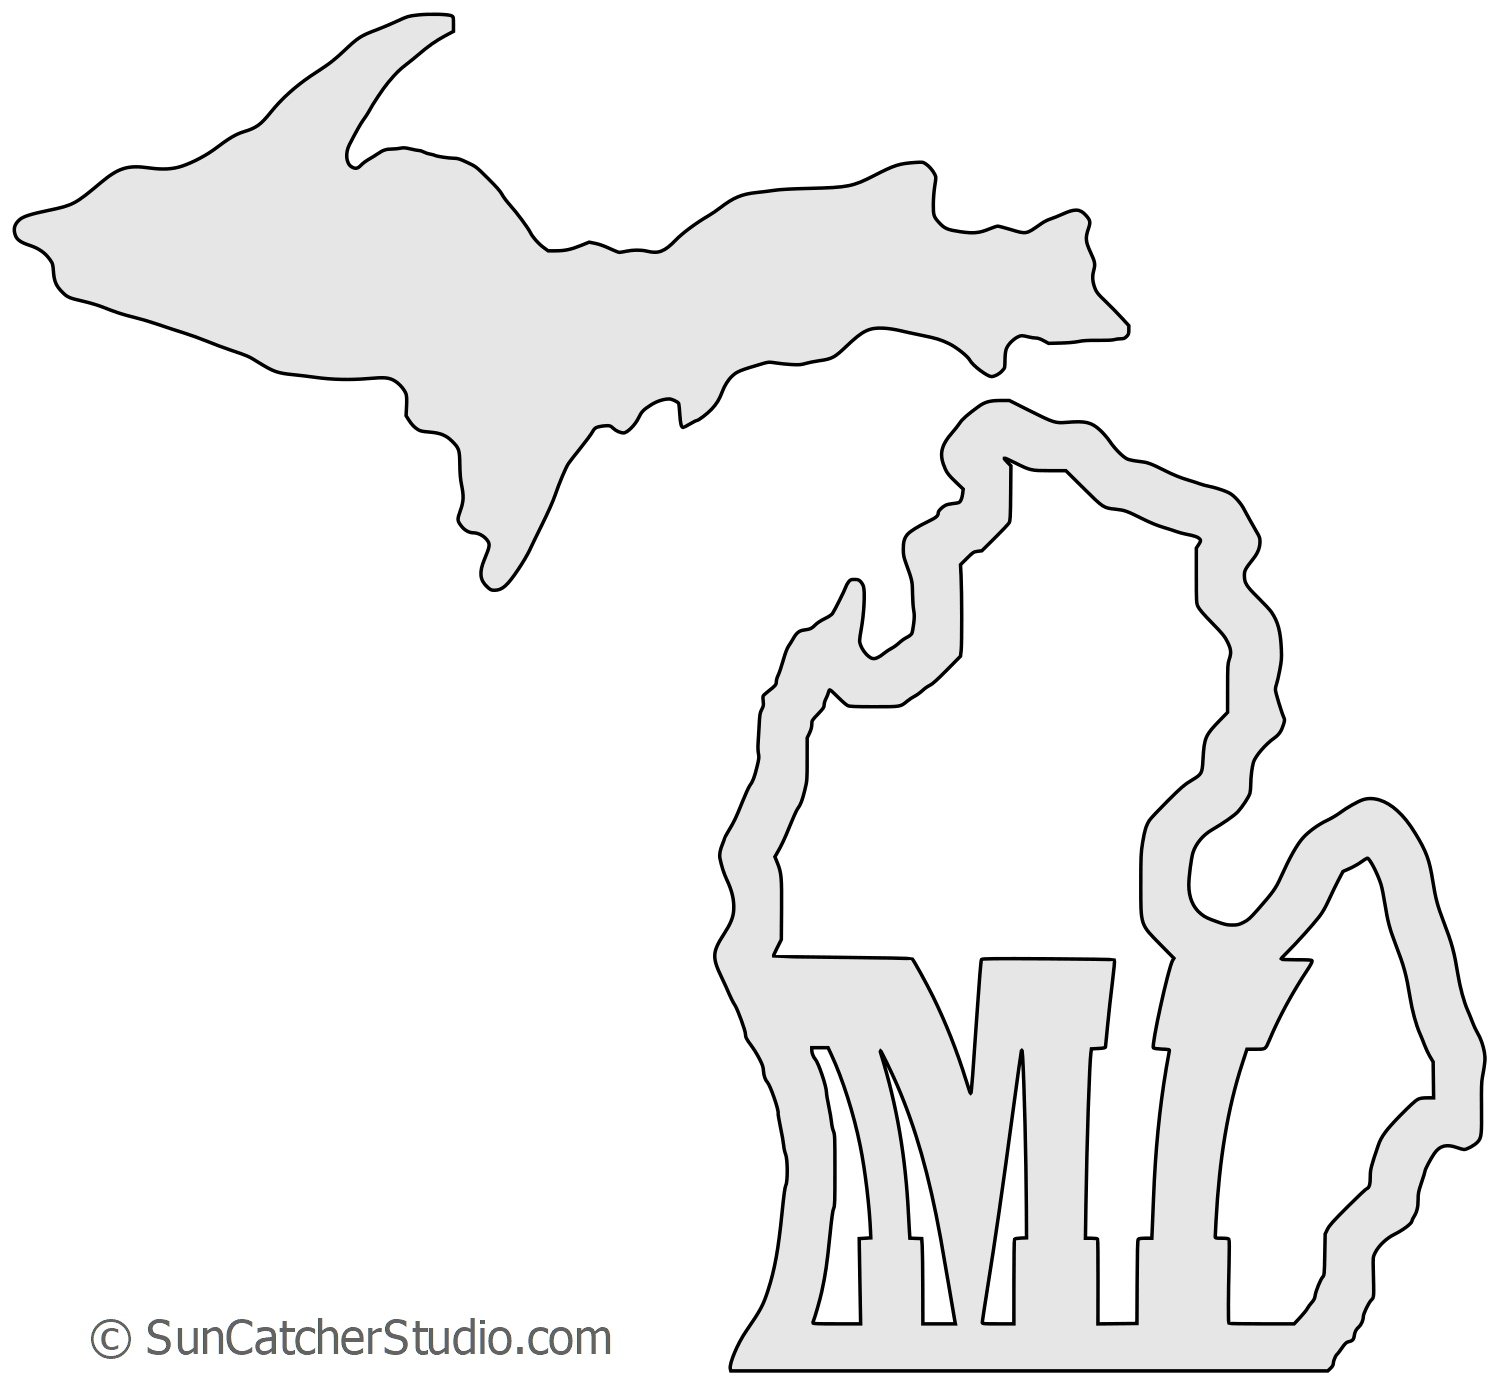 Michigan Map Outline Printable State Shape Stencil Pattern Free Stencils Printables Printable Stencil Patterns Map Outline